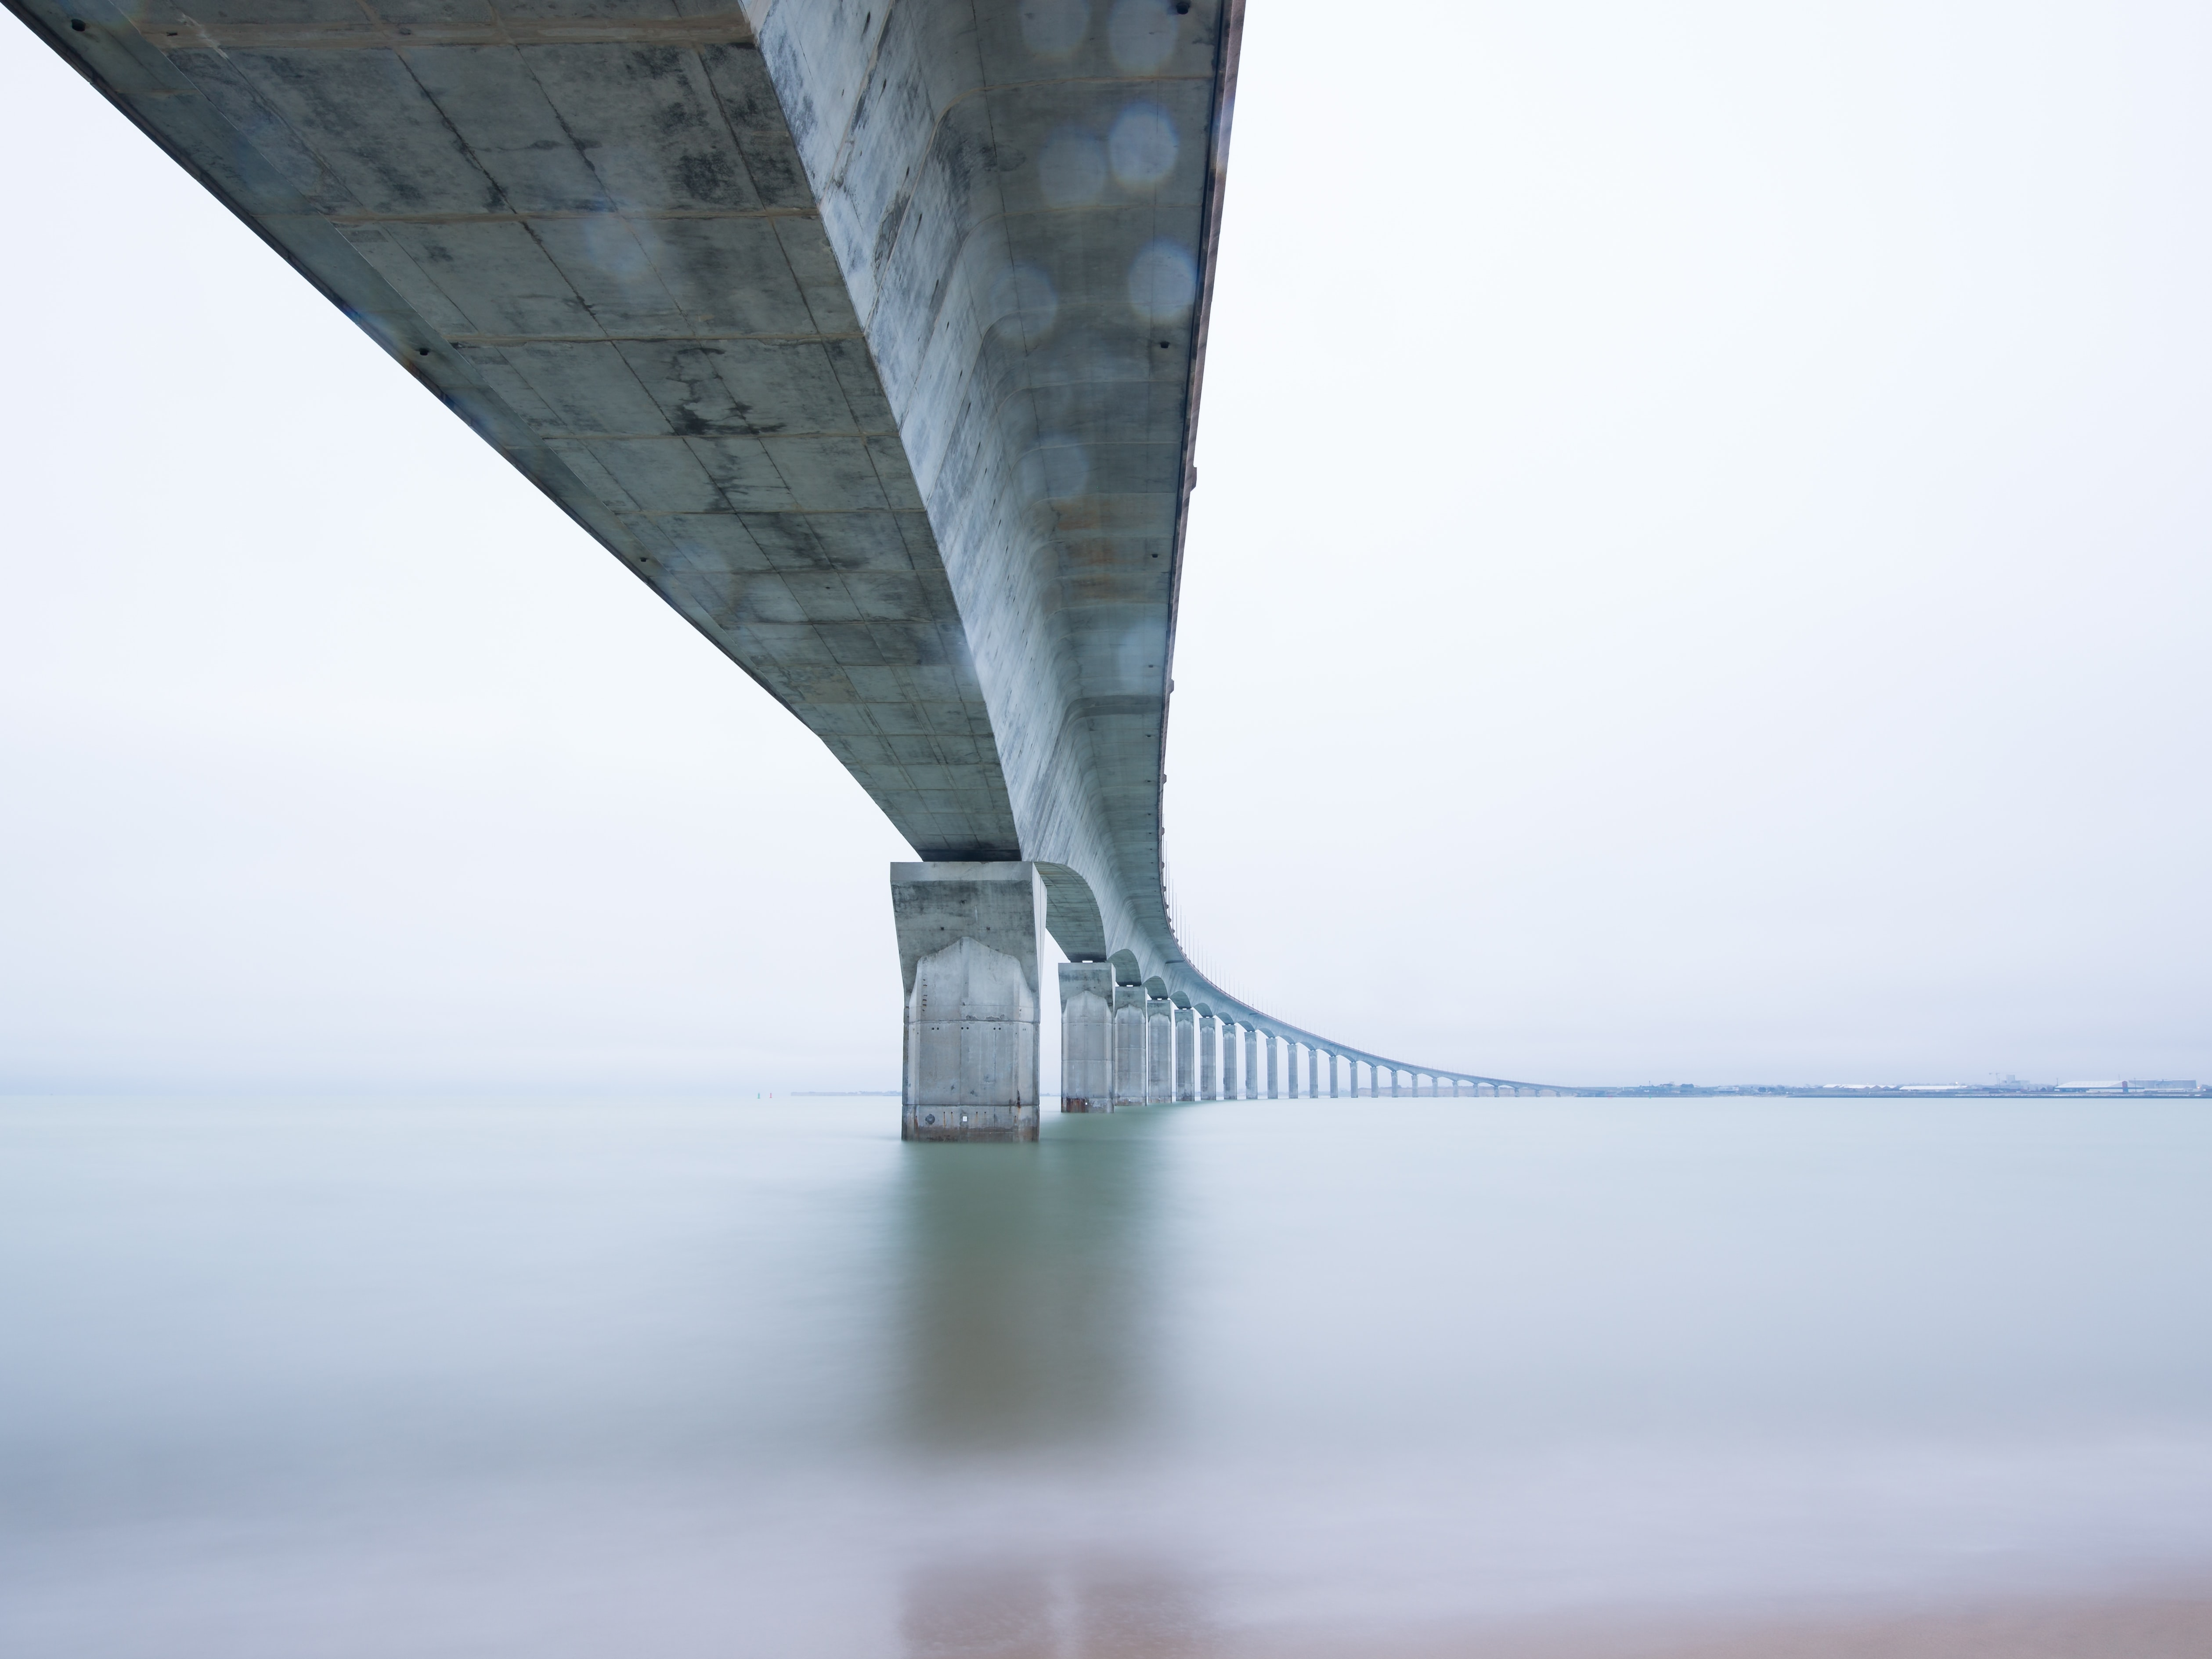 A long curved concrete bridge on a cloudy day